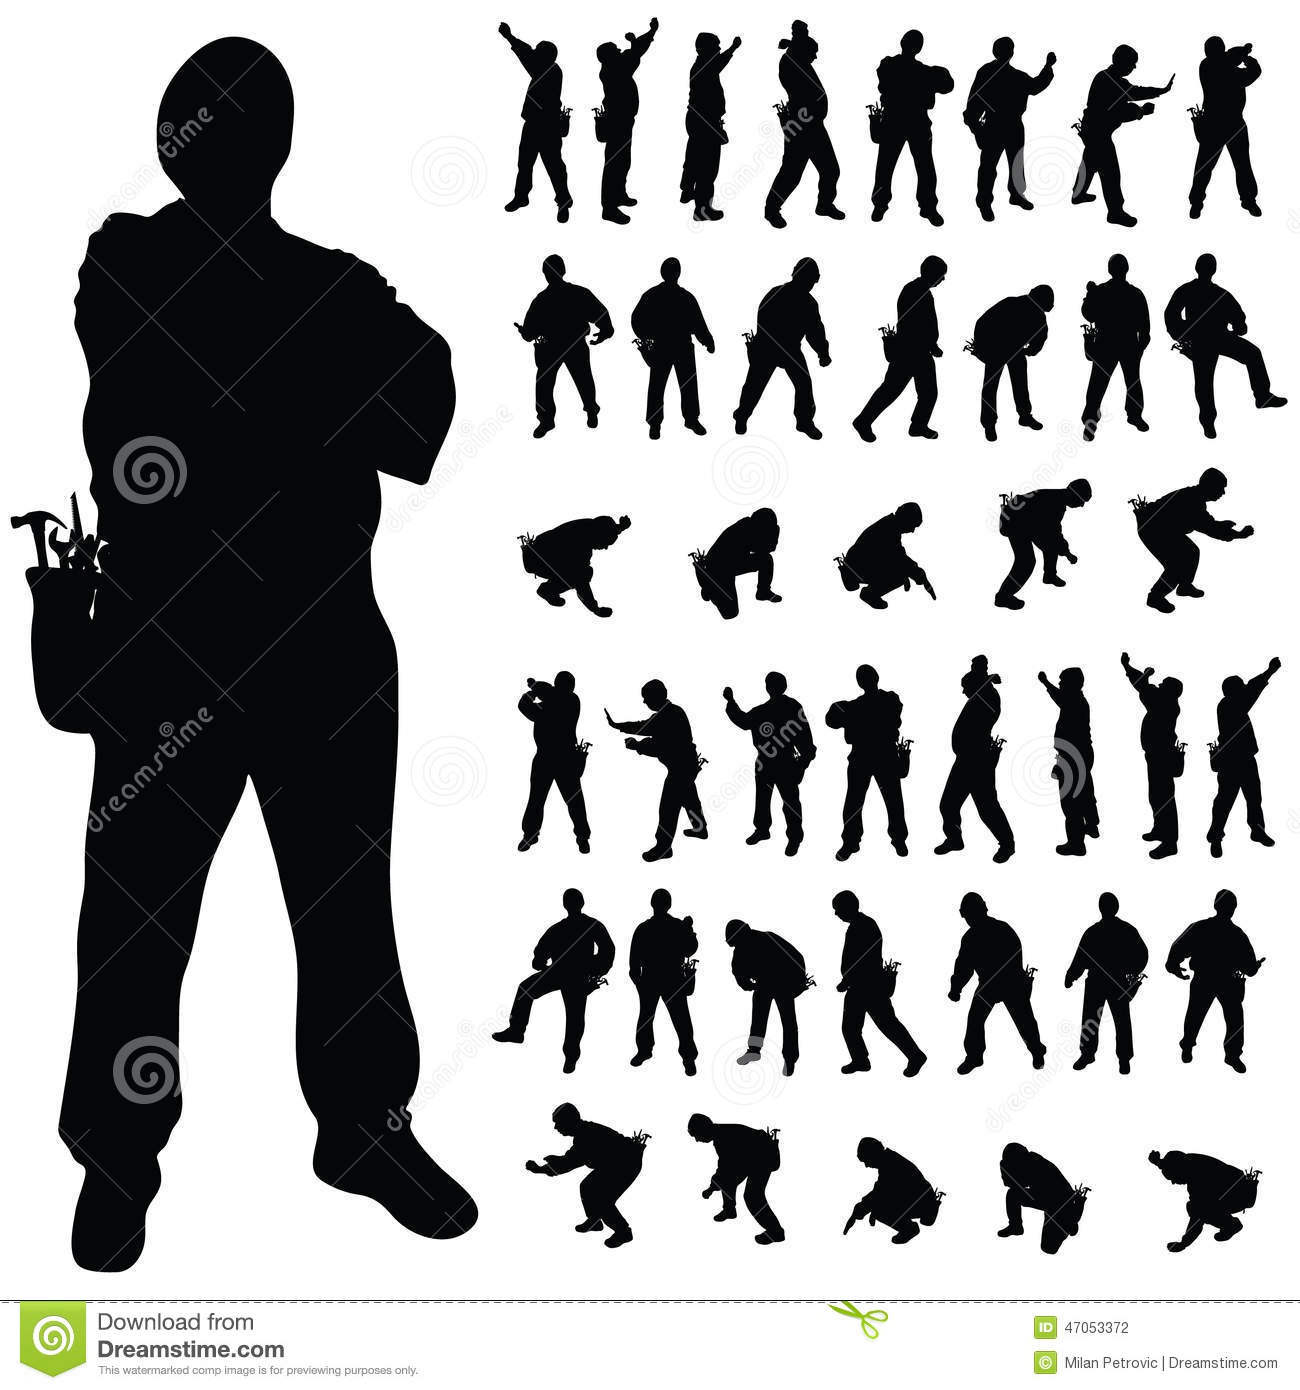 worker black silhouette in various poses stock vector